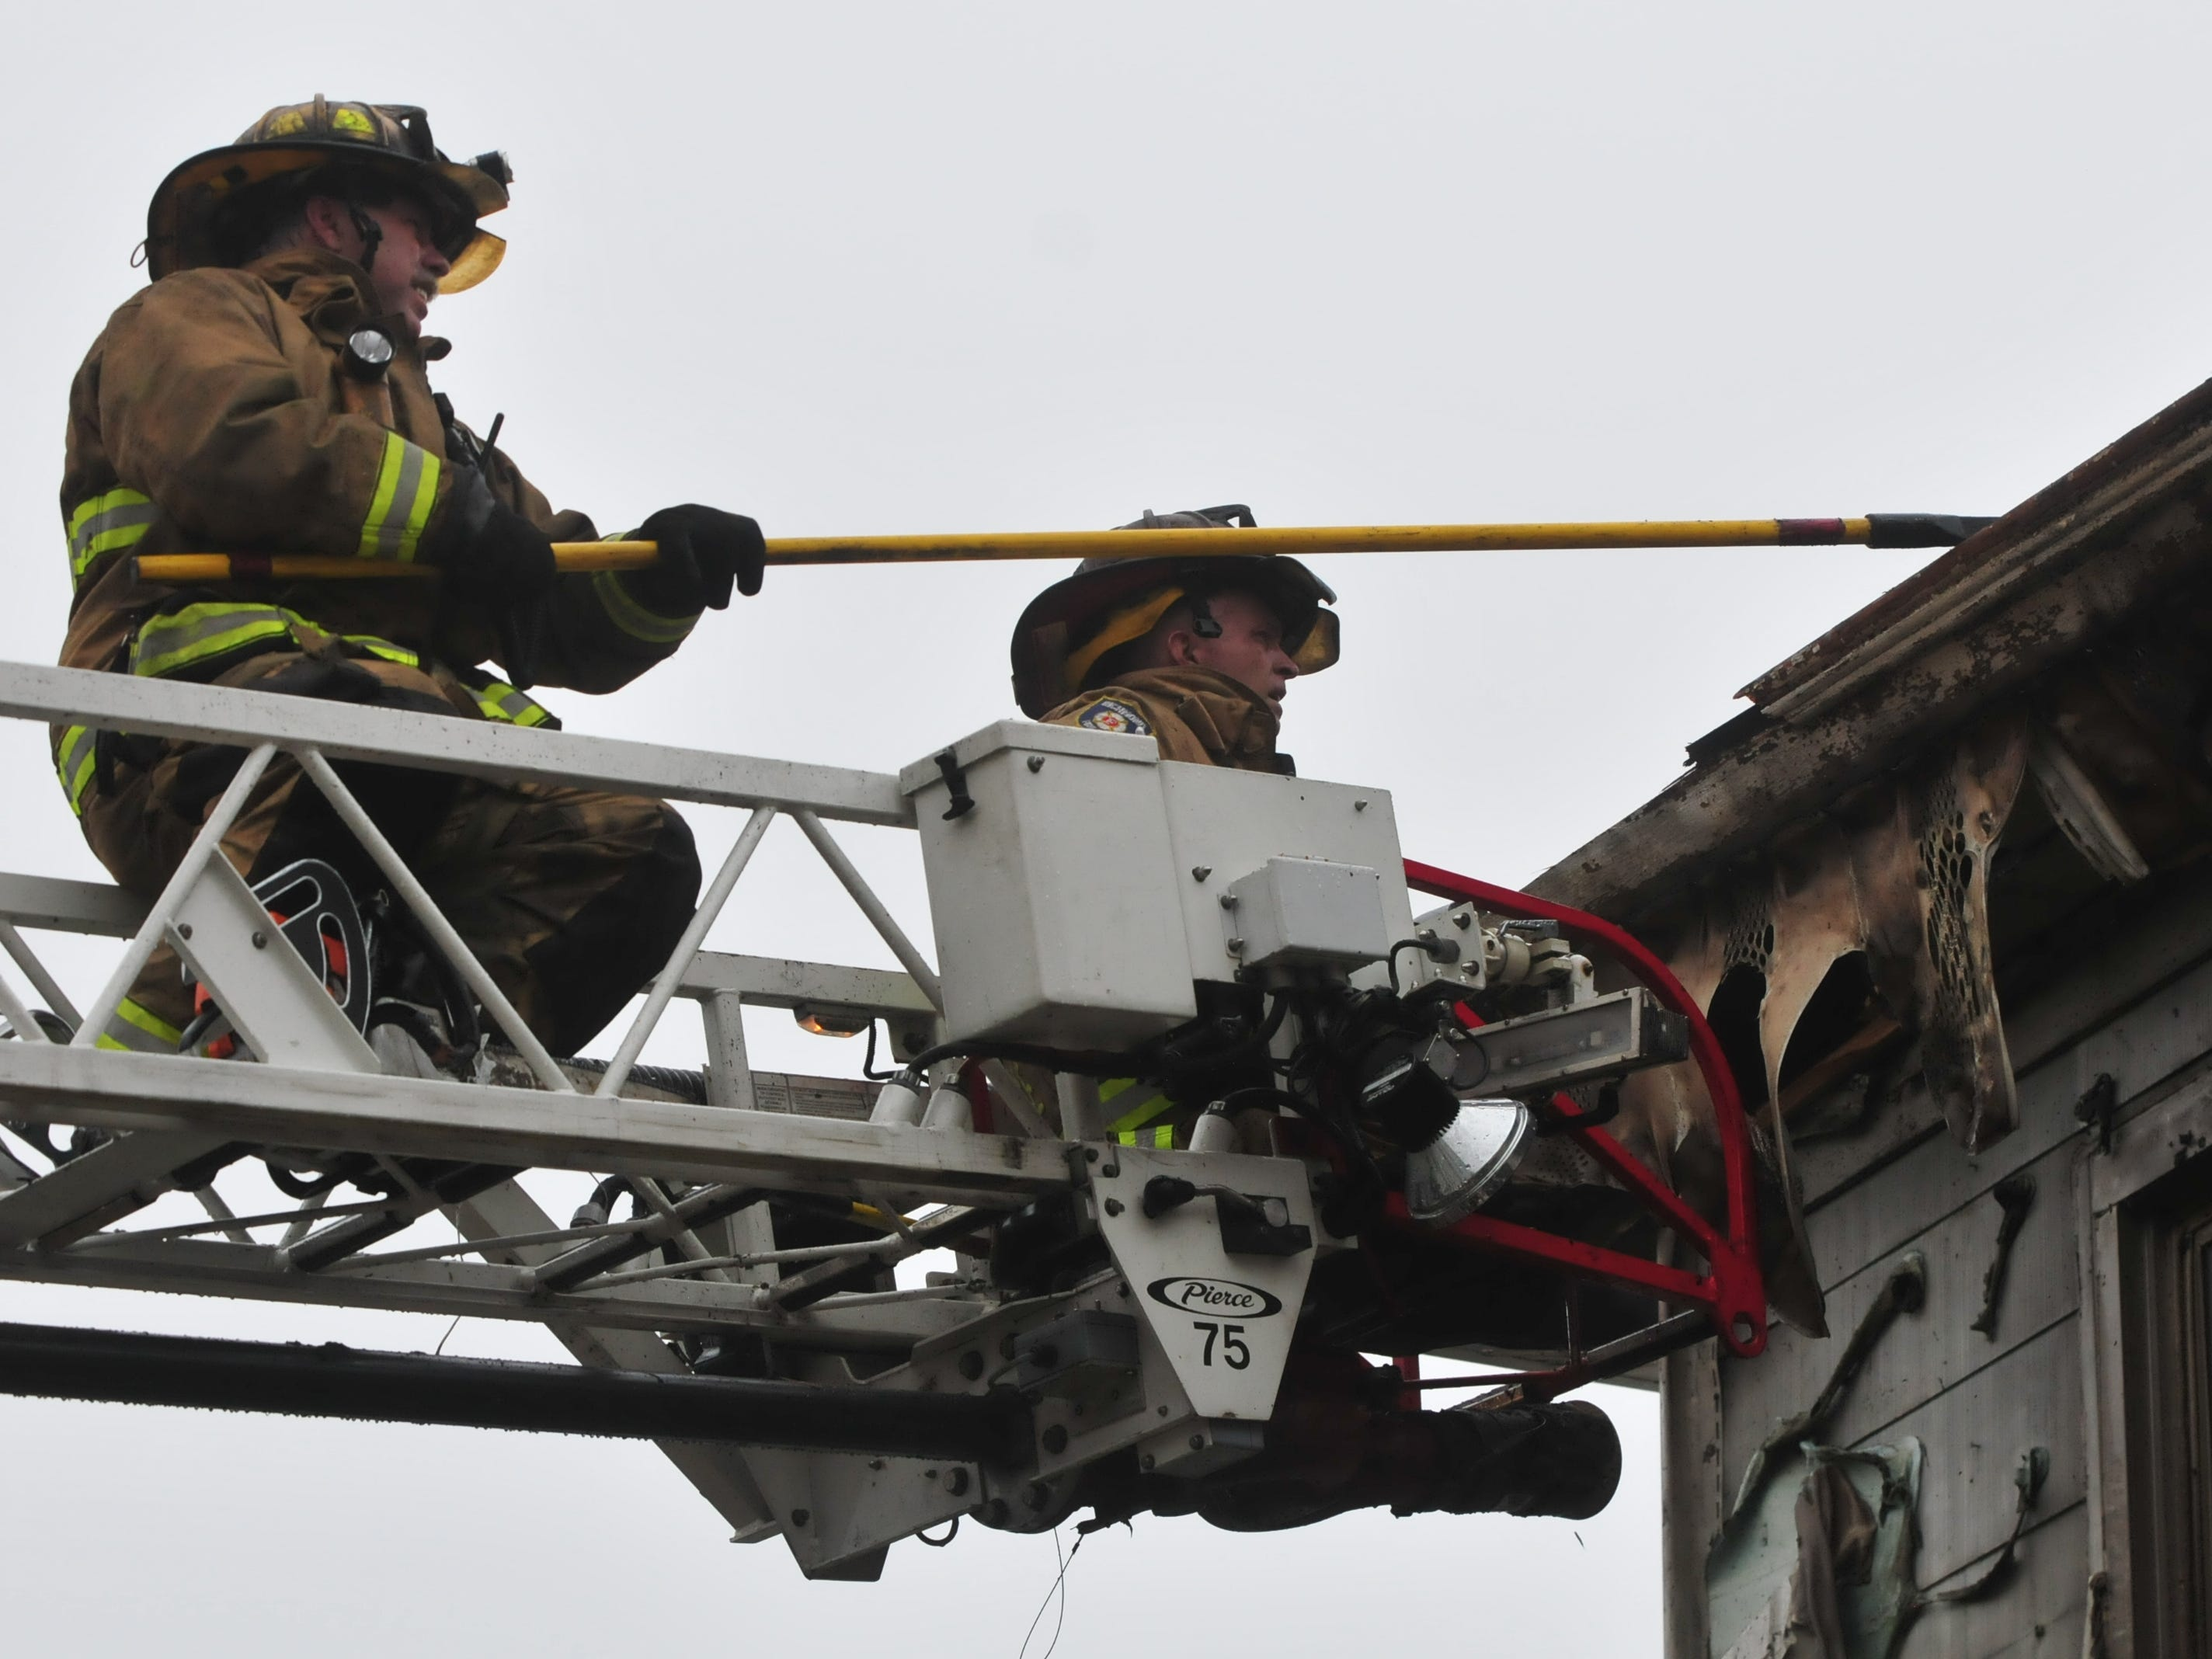 Firefighter Jeff Glenn and Lt. Kyle George pull down parts of the house at 112 N. 18th St. to access the final areas of fire Wednesday.